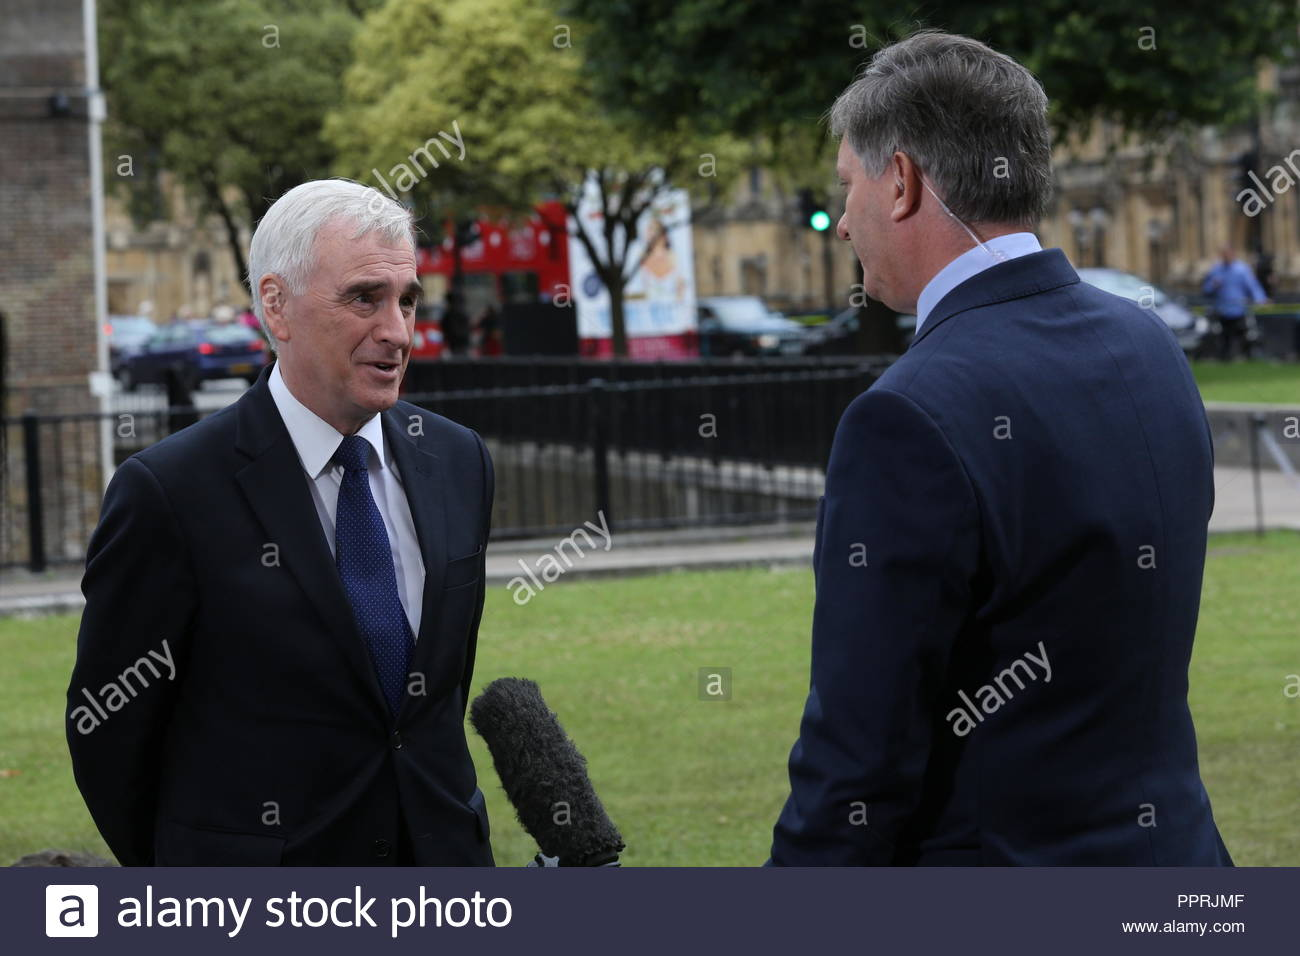 John McConnell of Labour being interviewed by Simon McCoy the morning after the referendum result in June 2016 - Stock Image